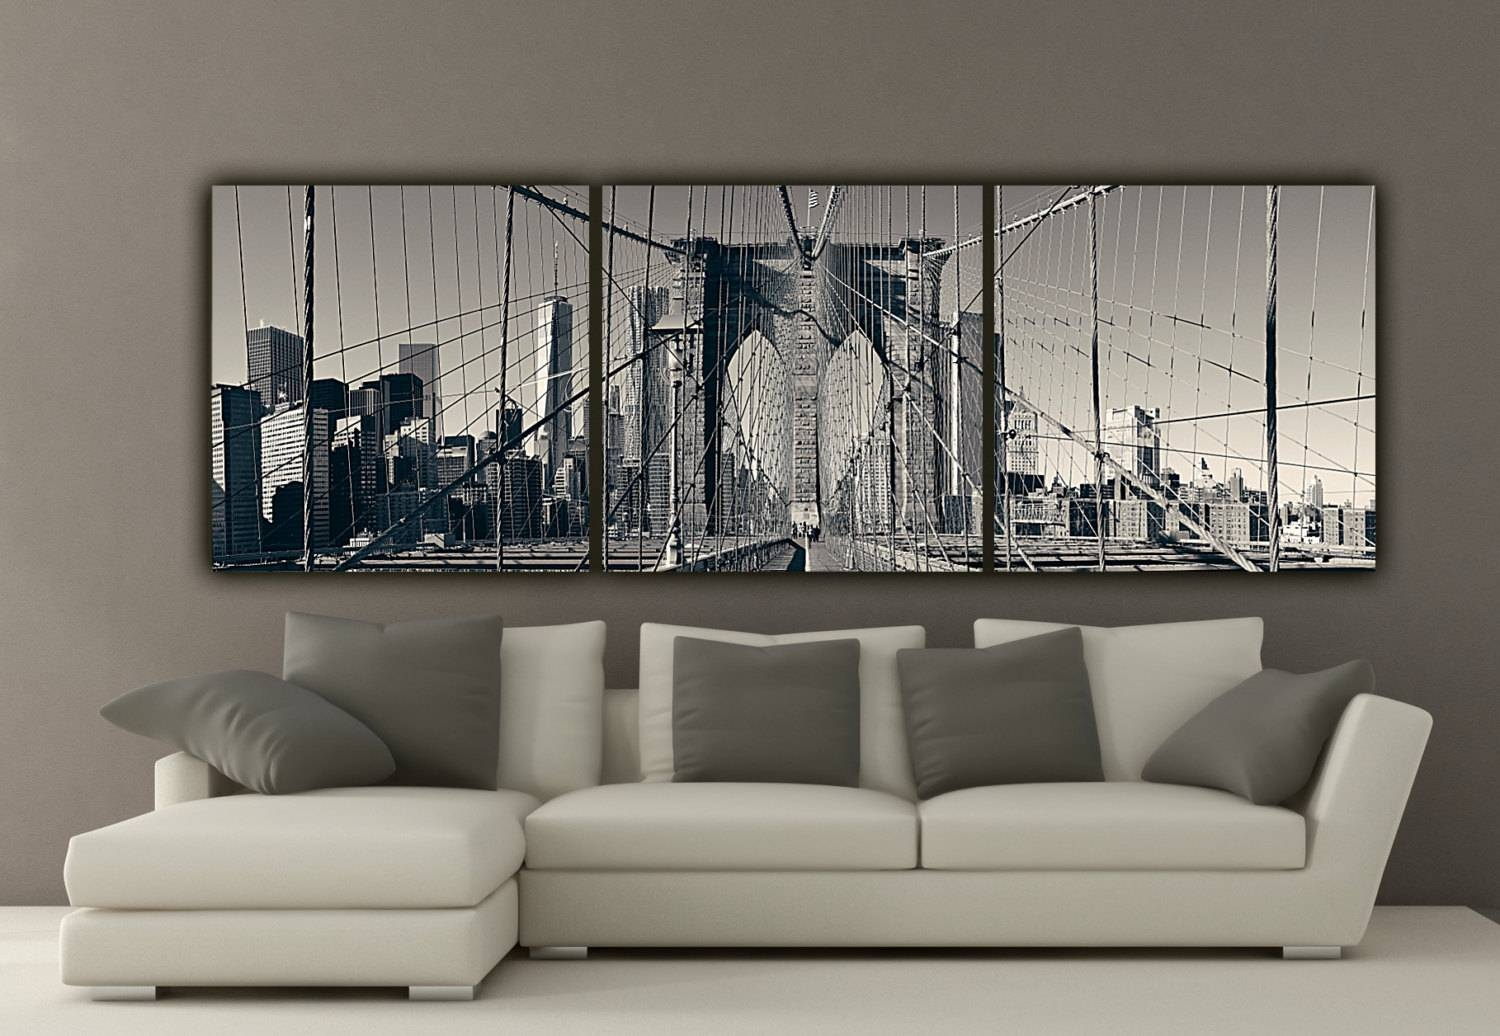 New York Brooklyn Bridge Canvas Wall Art Black And White New Pertaining To Most Recently Released New York City Wall Art (View 6 of 20)